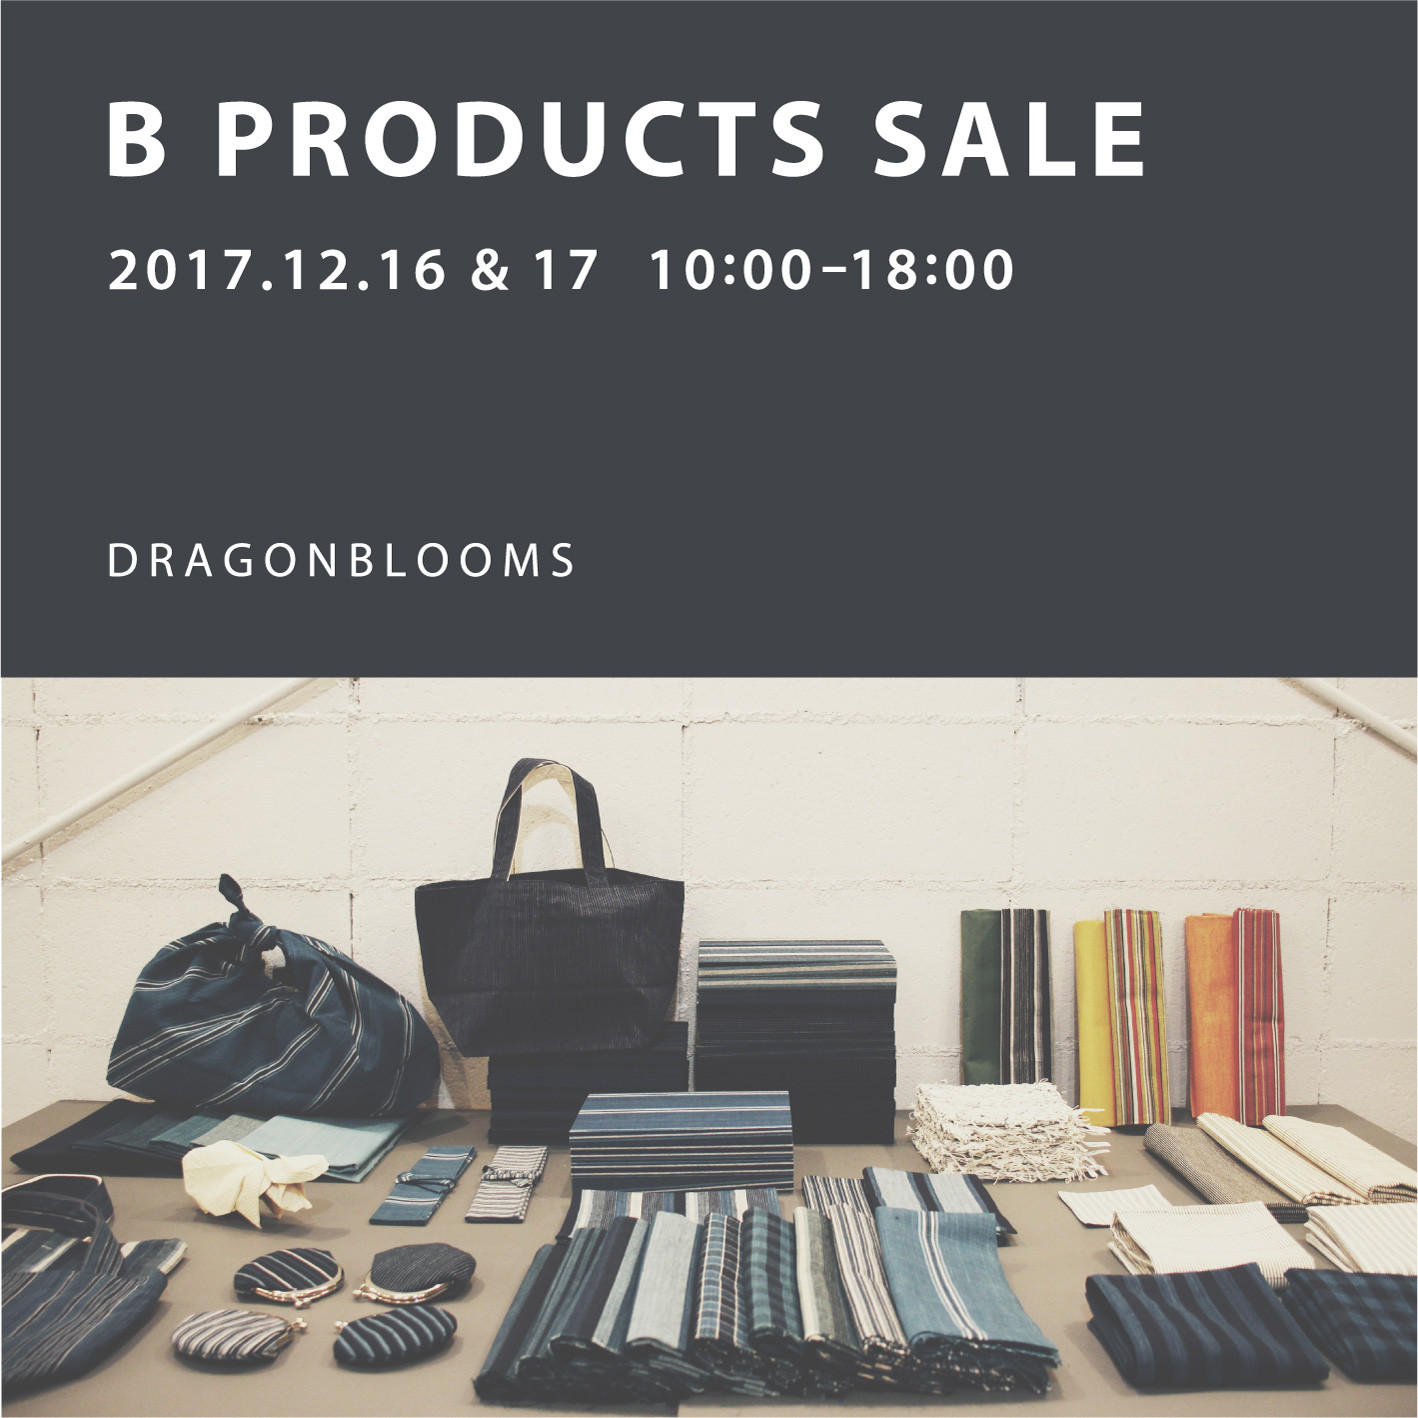 B PRODUCTS SALE 開催のご案内